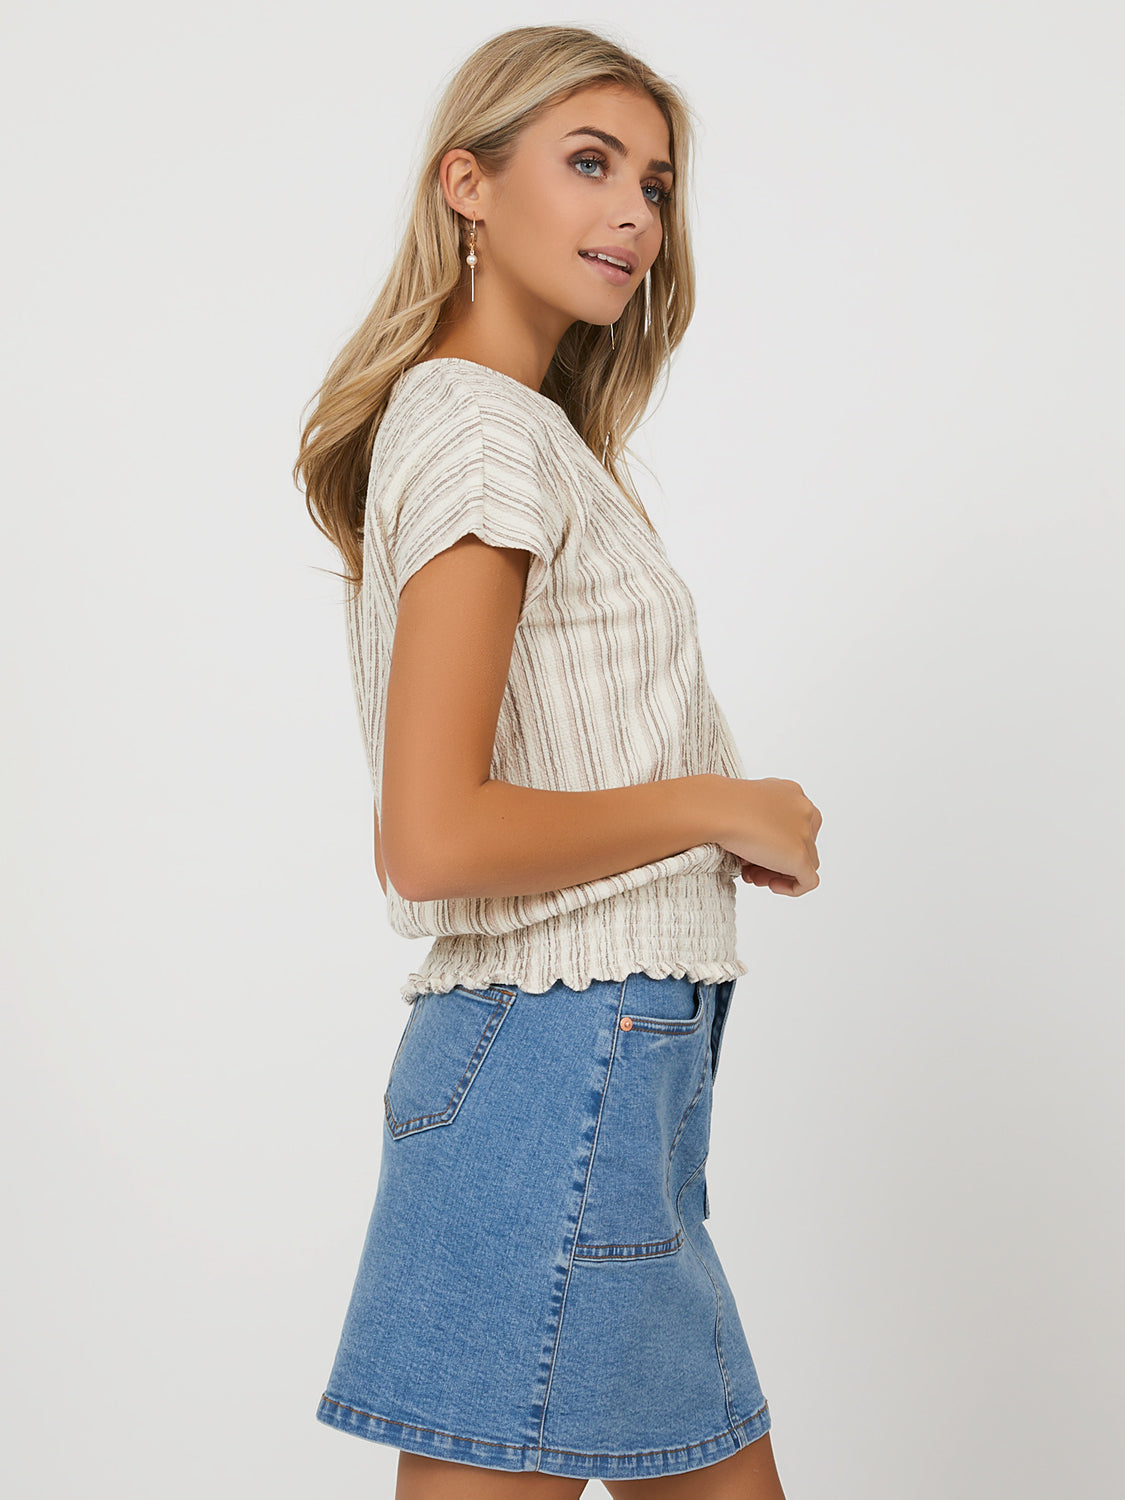 Short Dolman Sleeve Textured Striped Tee